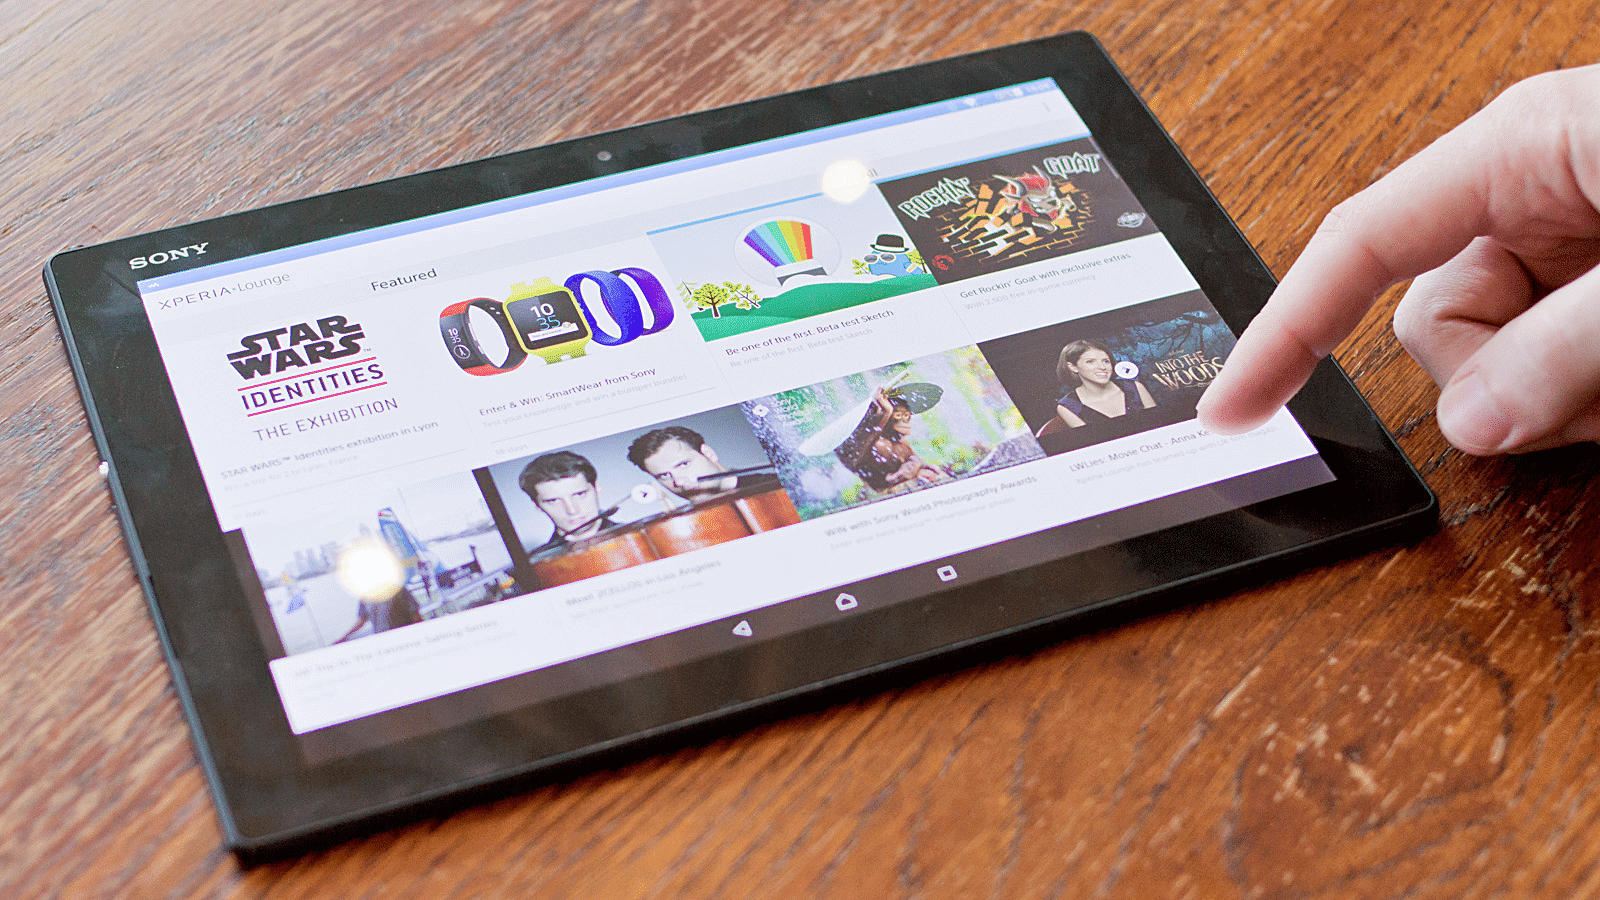 Install 32.4.A.0.160 Android 7.1.1 Nougat Official Update On Xperia Z4 Tablet 1